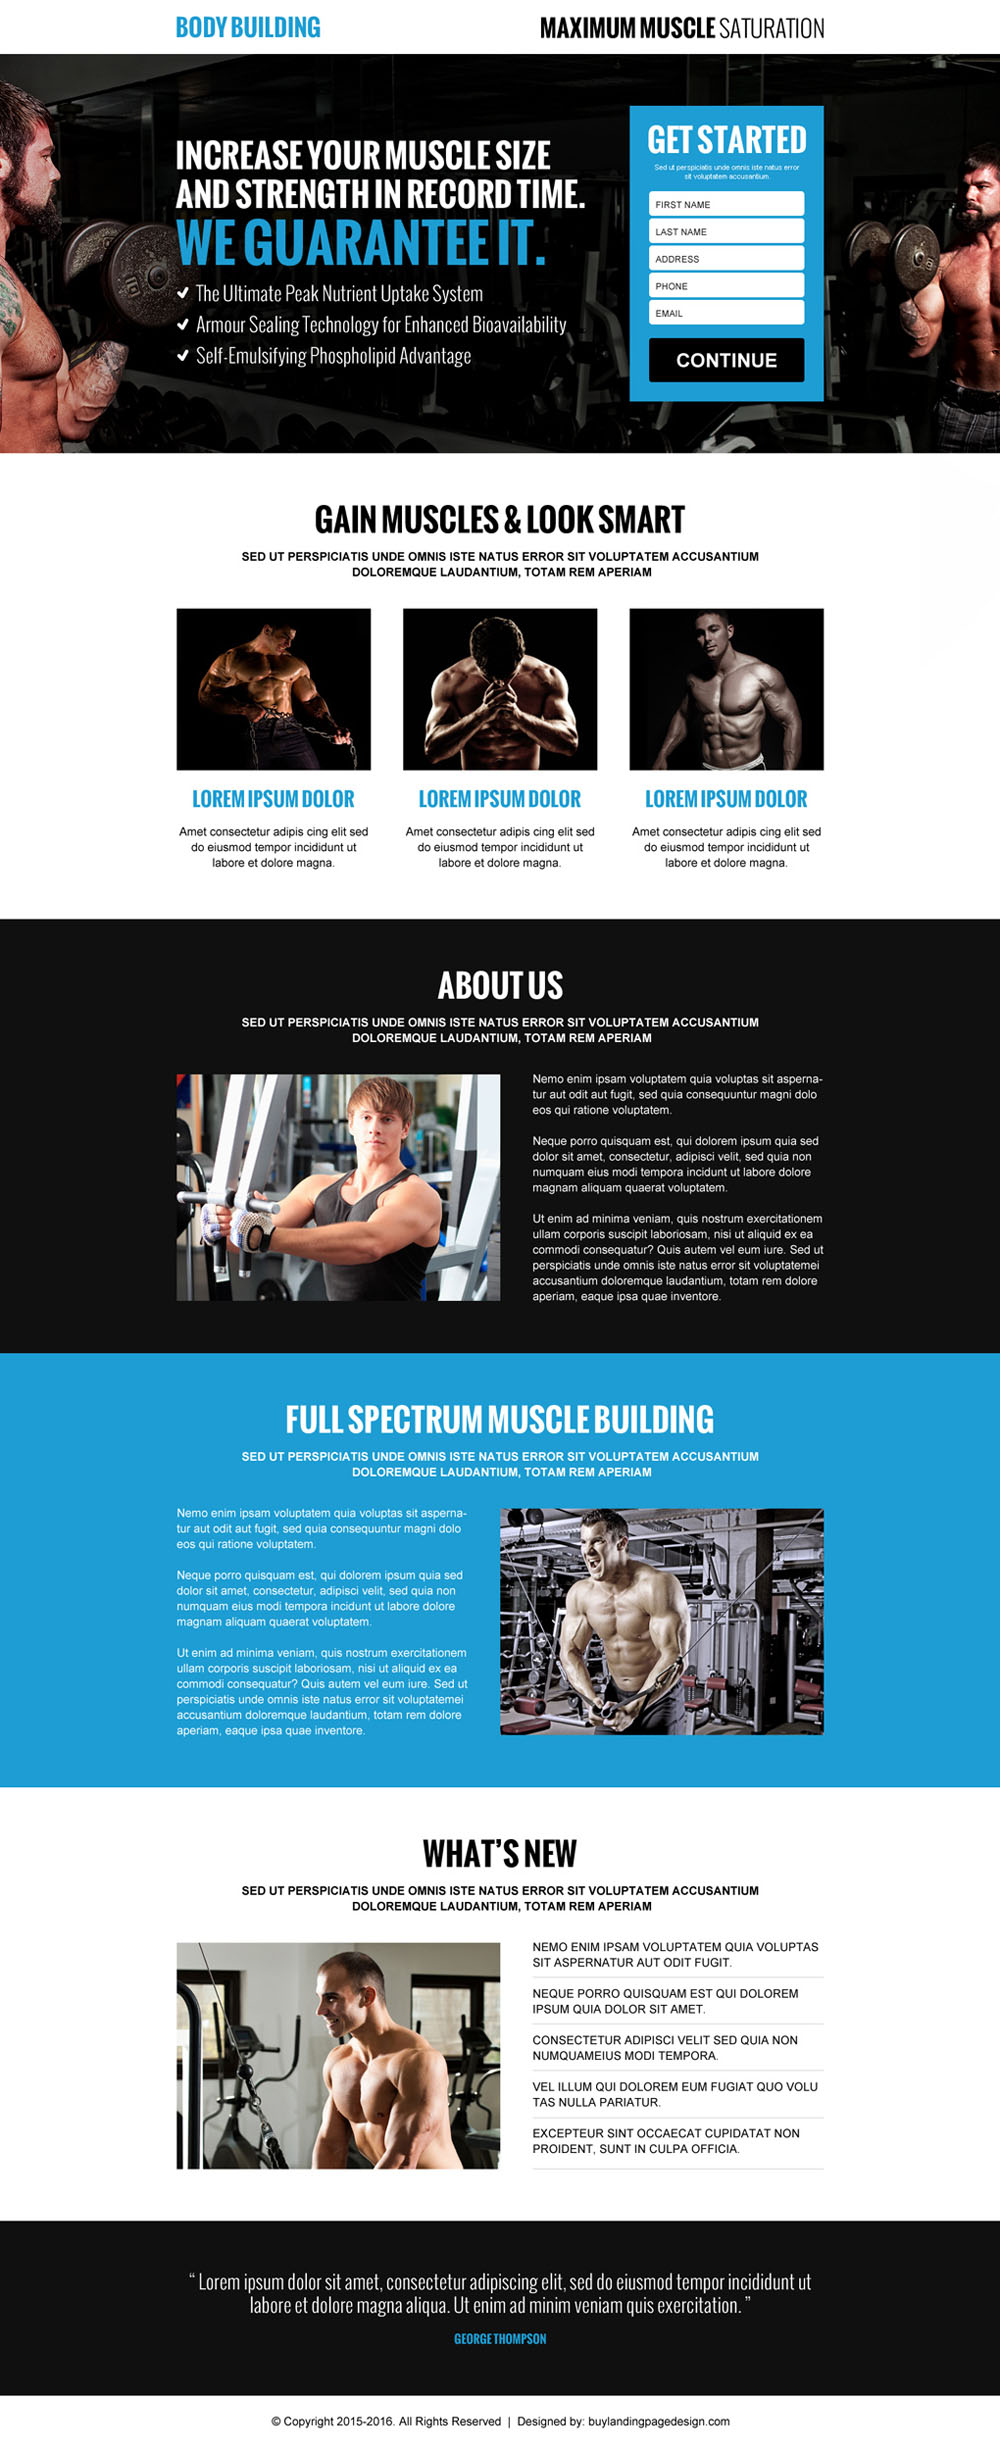 gain-muscles-look-smart-lead-generation-landing-page-design-018